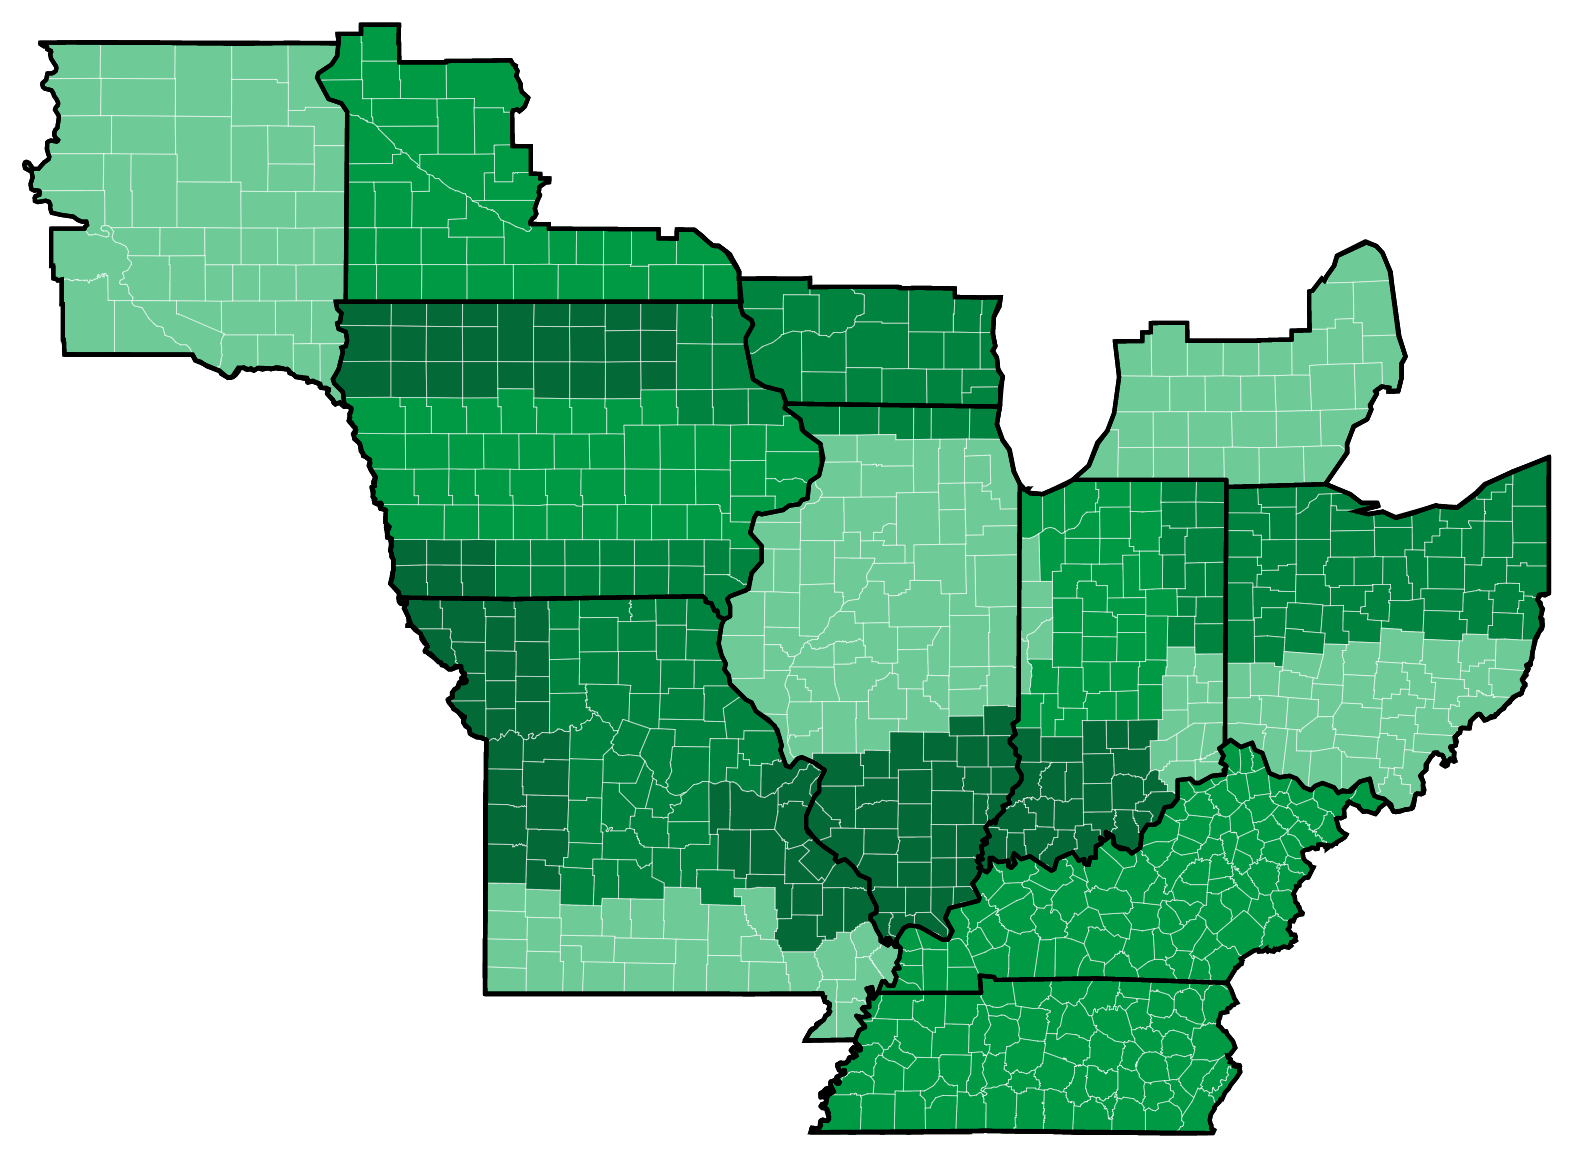 county map of Illinois, Indiana, and western Ohio